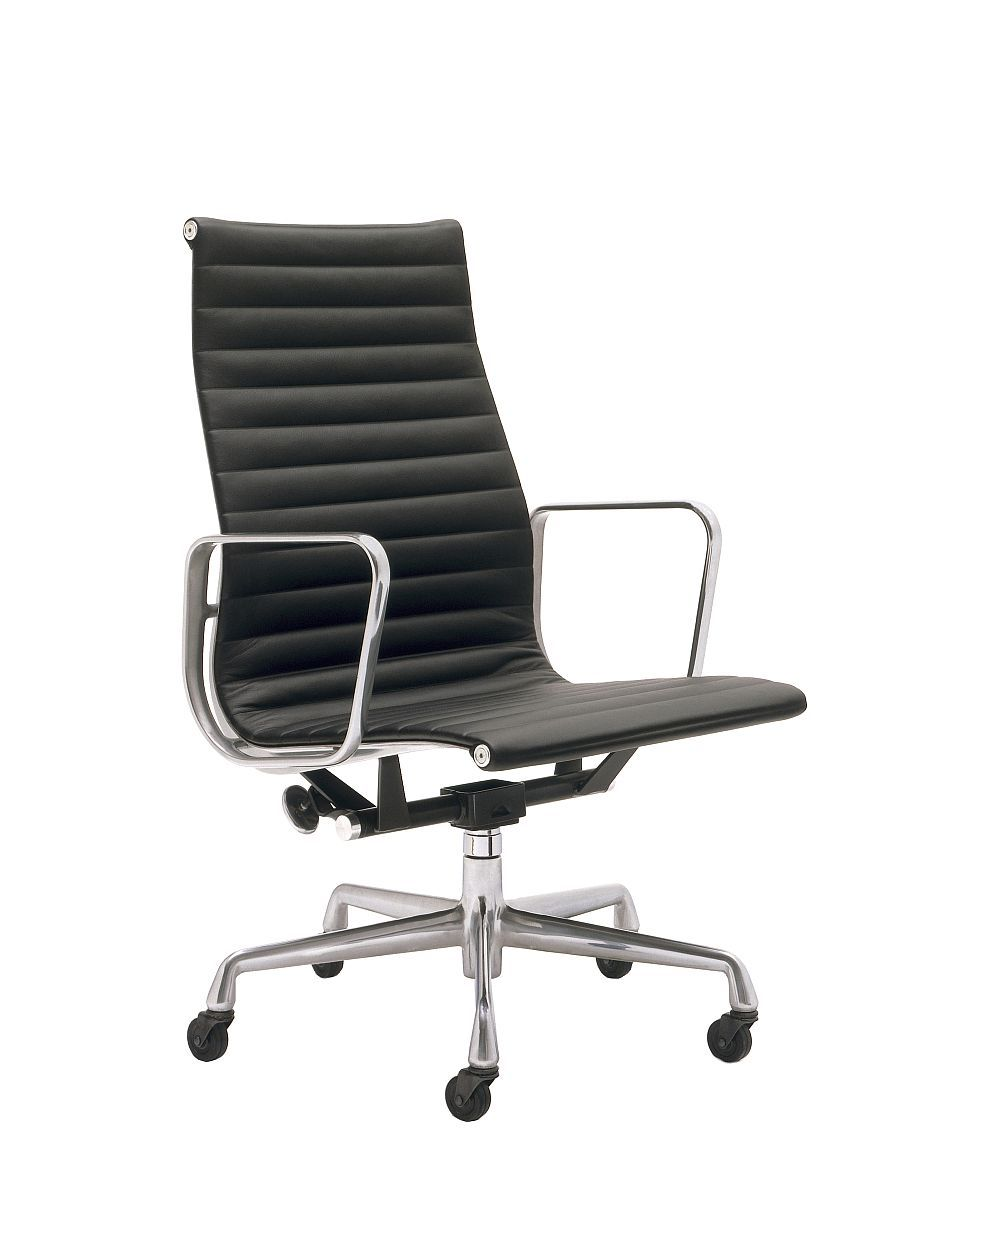 20 high end workplace chairs and seats study executive chair rh pinterest com